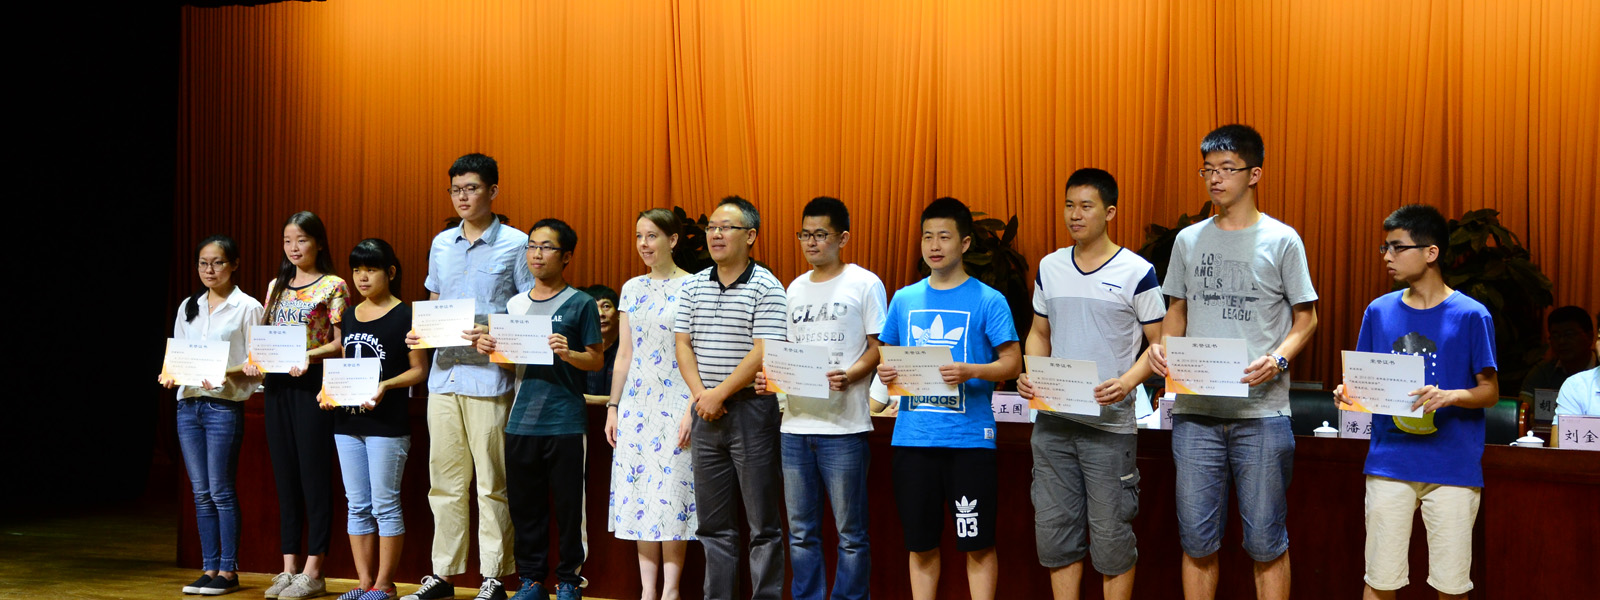 INVISTA Scholarship, Talent Forum at South China University of Technology cultivates local talent